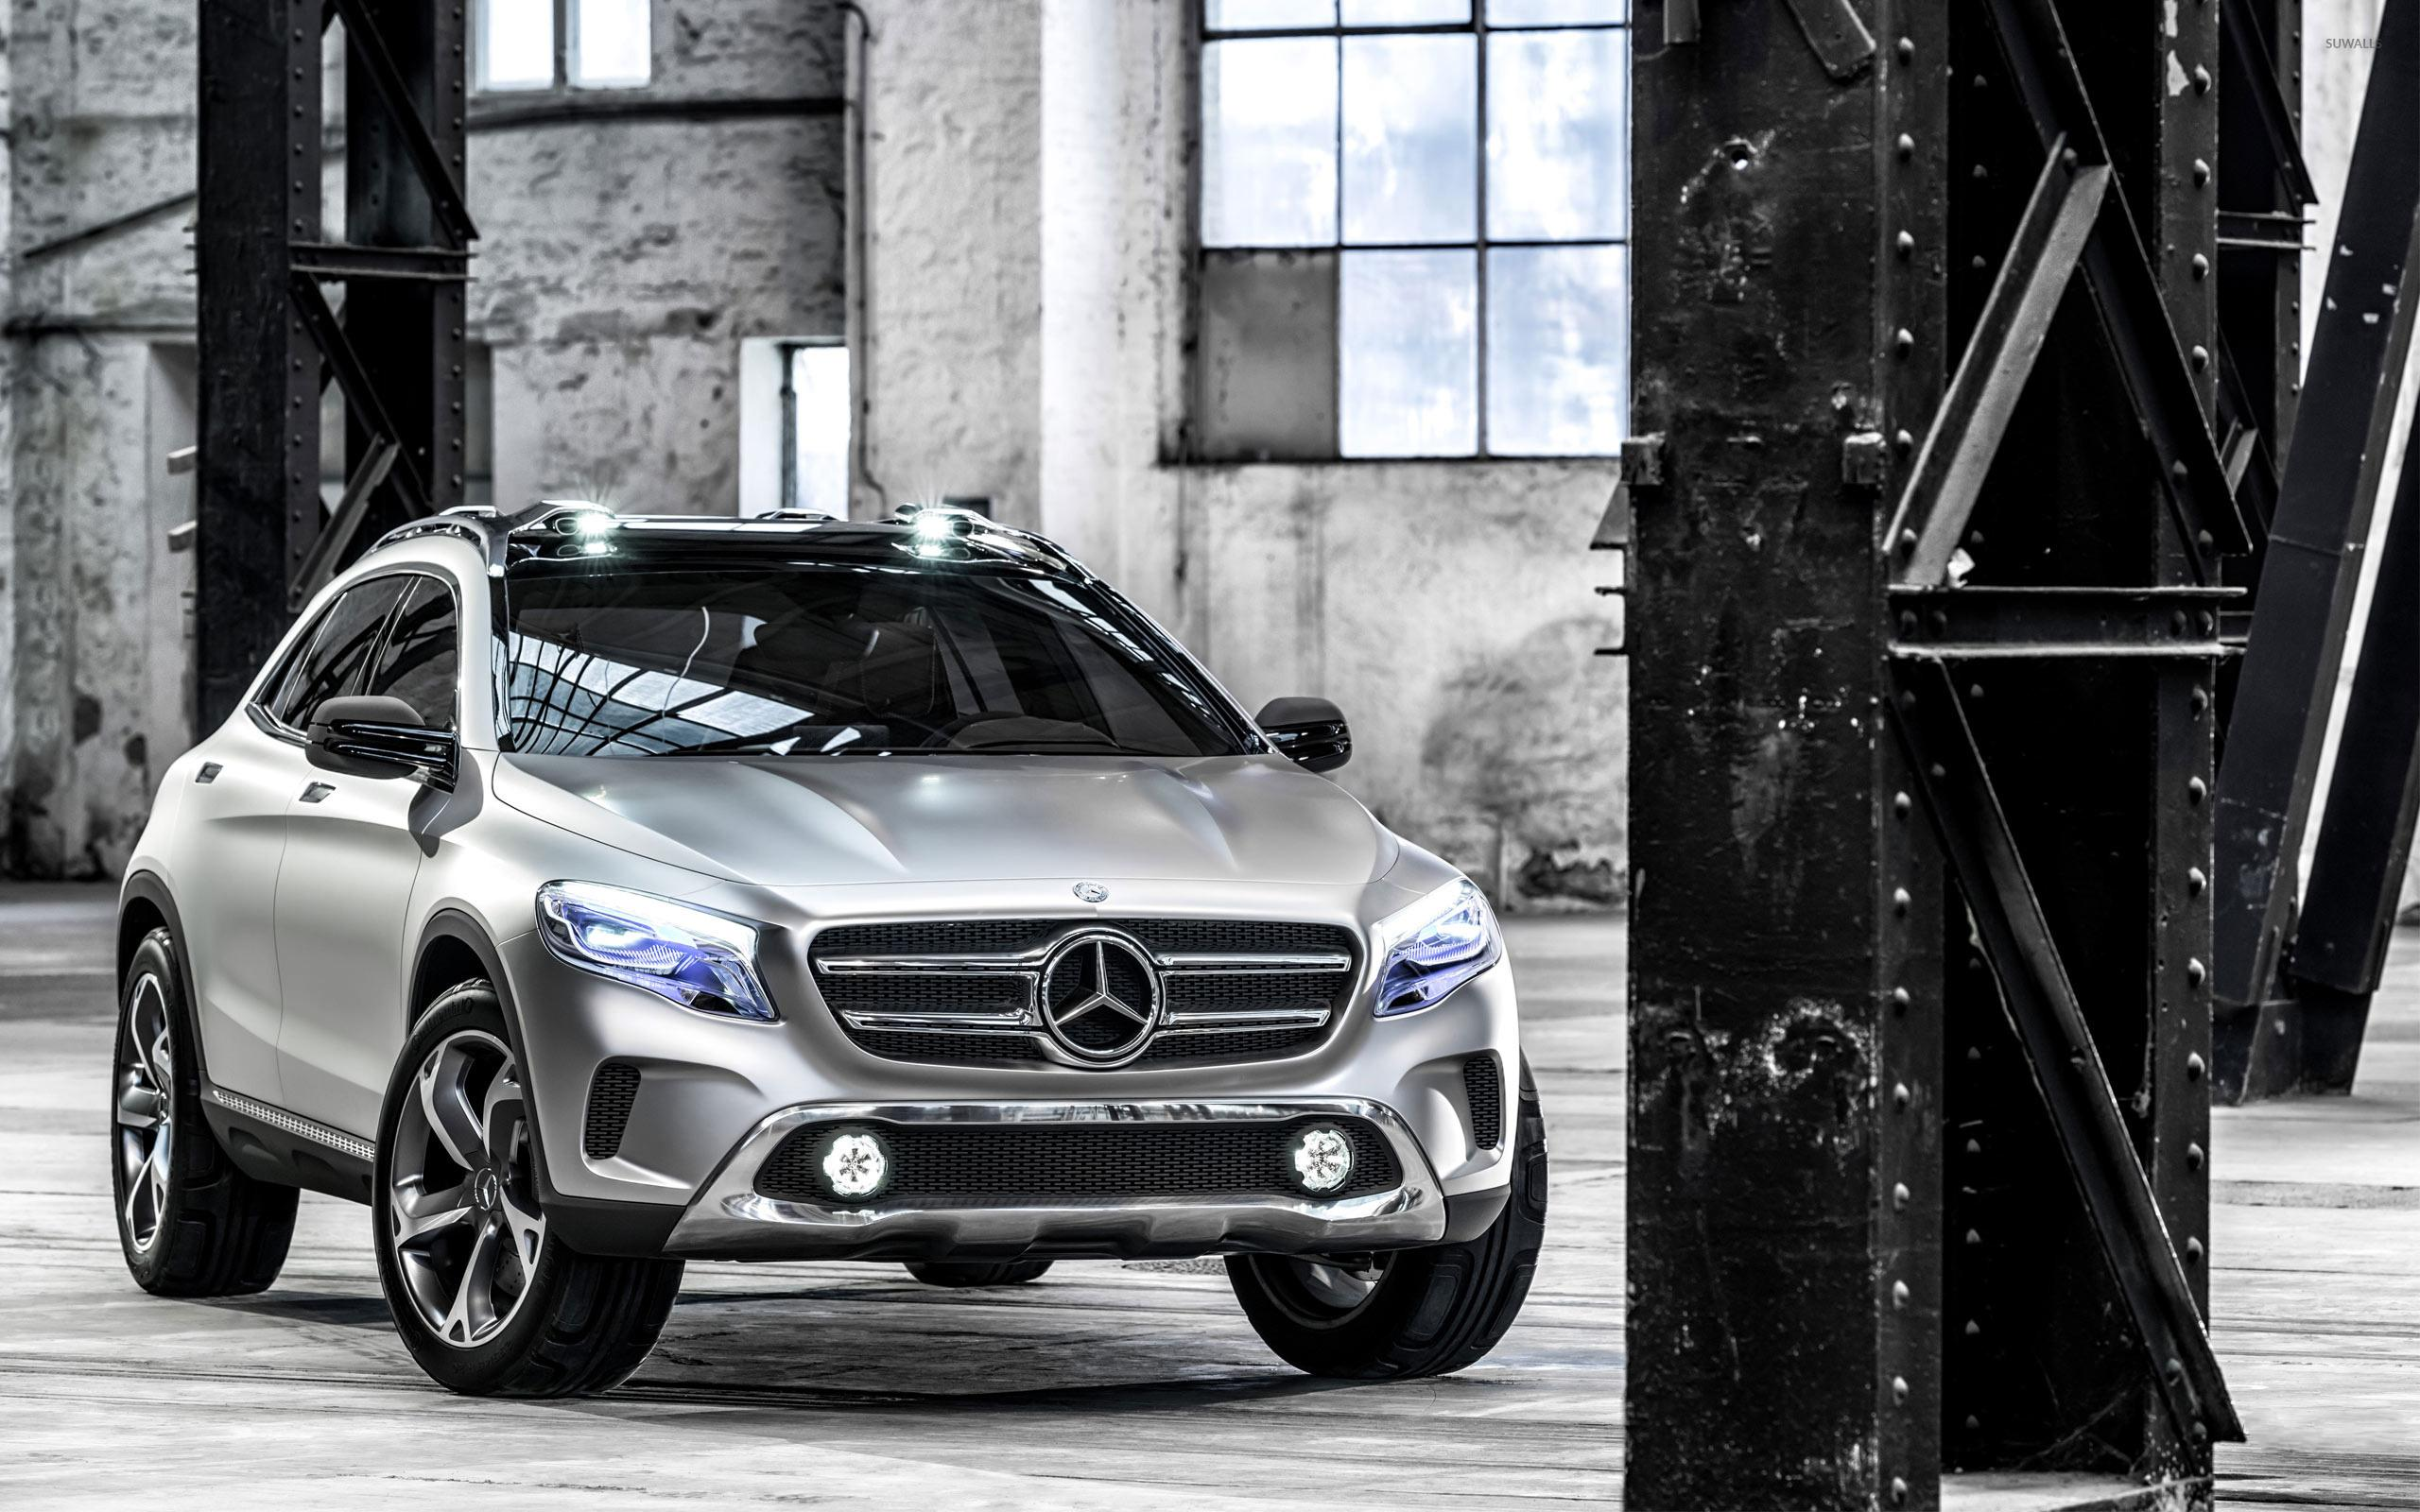 Mercedes-Benz GLA-Class [2] wallpaper - Car wallpapers - #43380